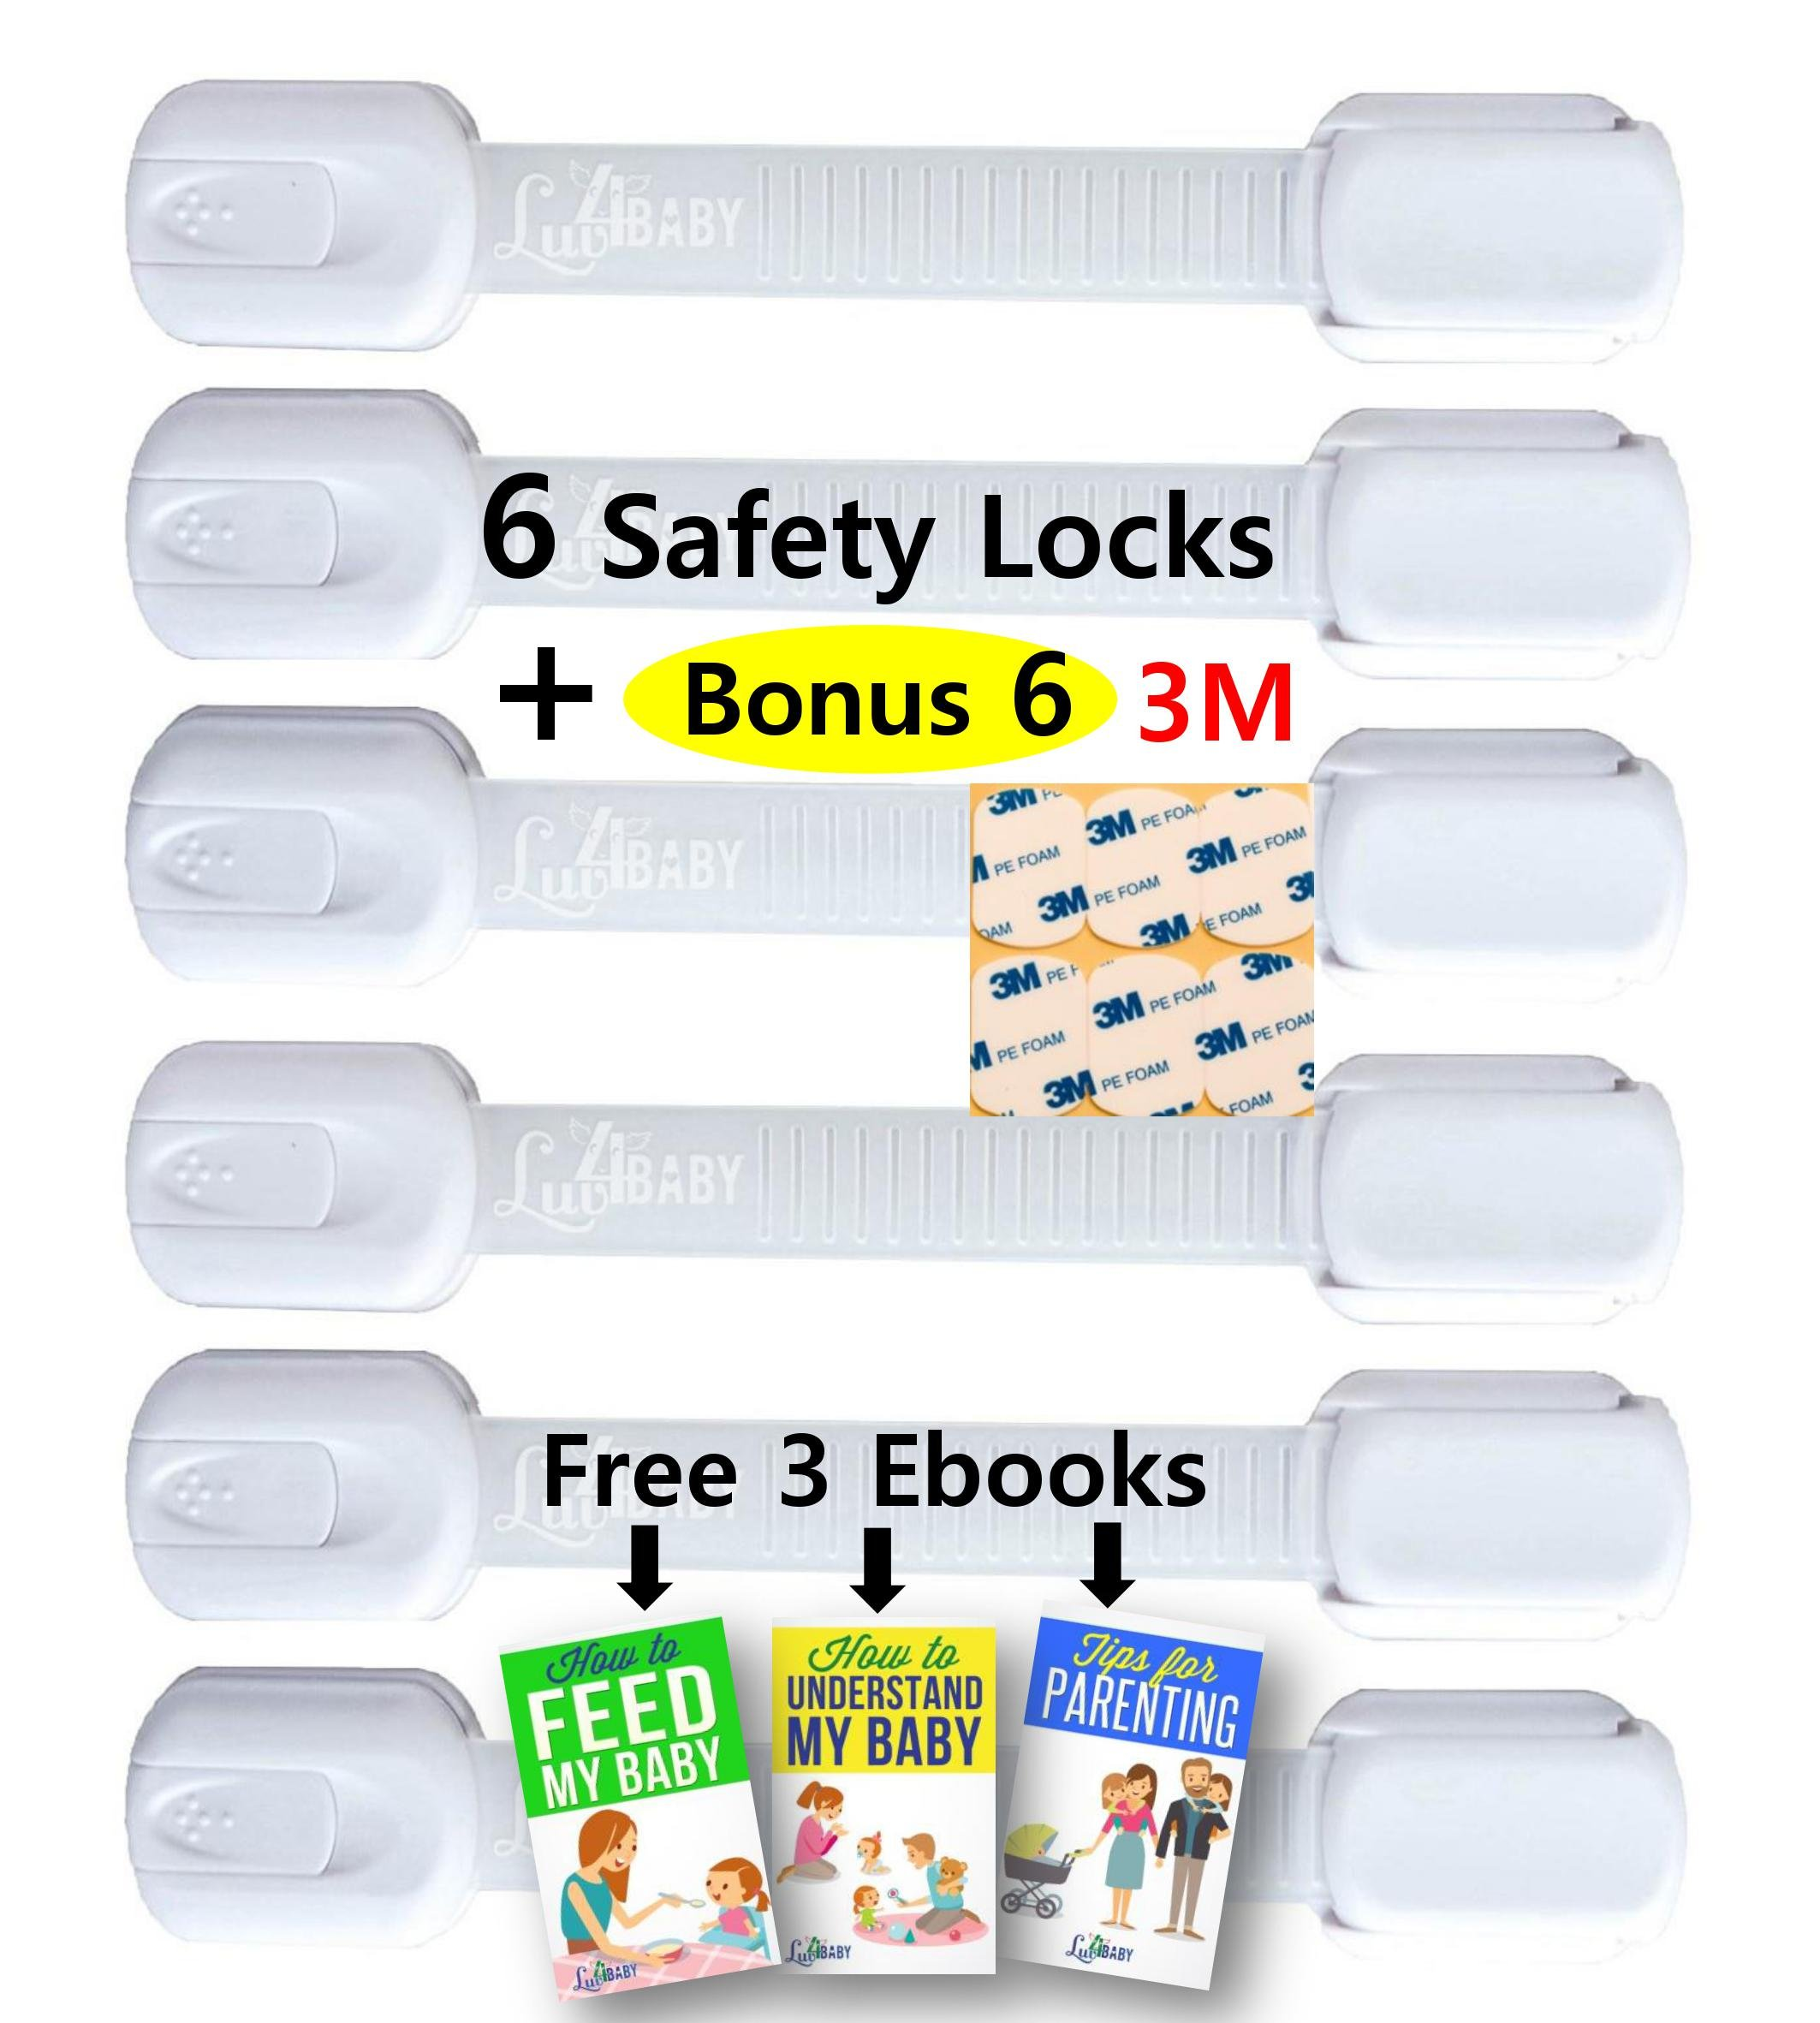 Adjustable Child Safety Locks by Luv4Baby - Latches to Baby Proof Cabinets, Drawers, Fridge, Dishwasher, Toilet Seat - No Tools or Drilling - Reusable With Extra 6 3M Adhesives Included - 6 Pack